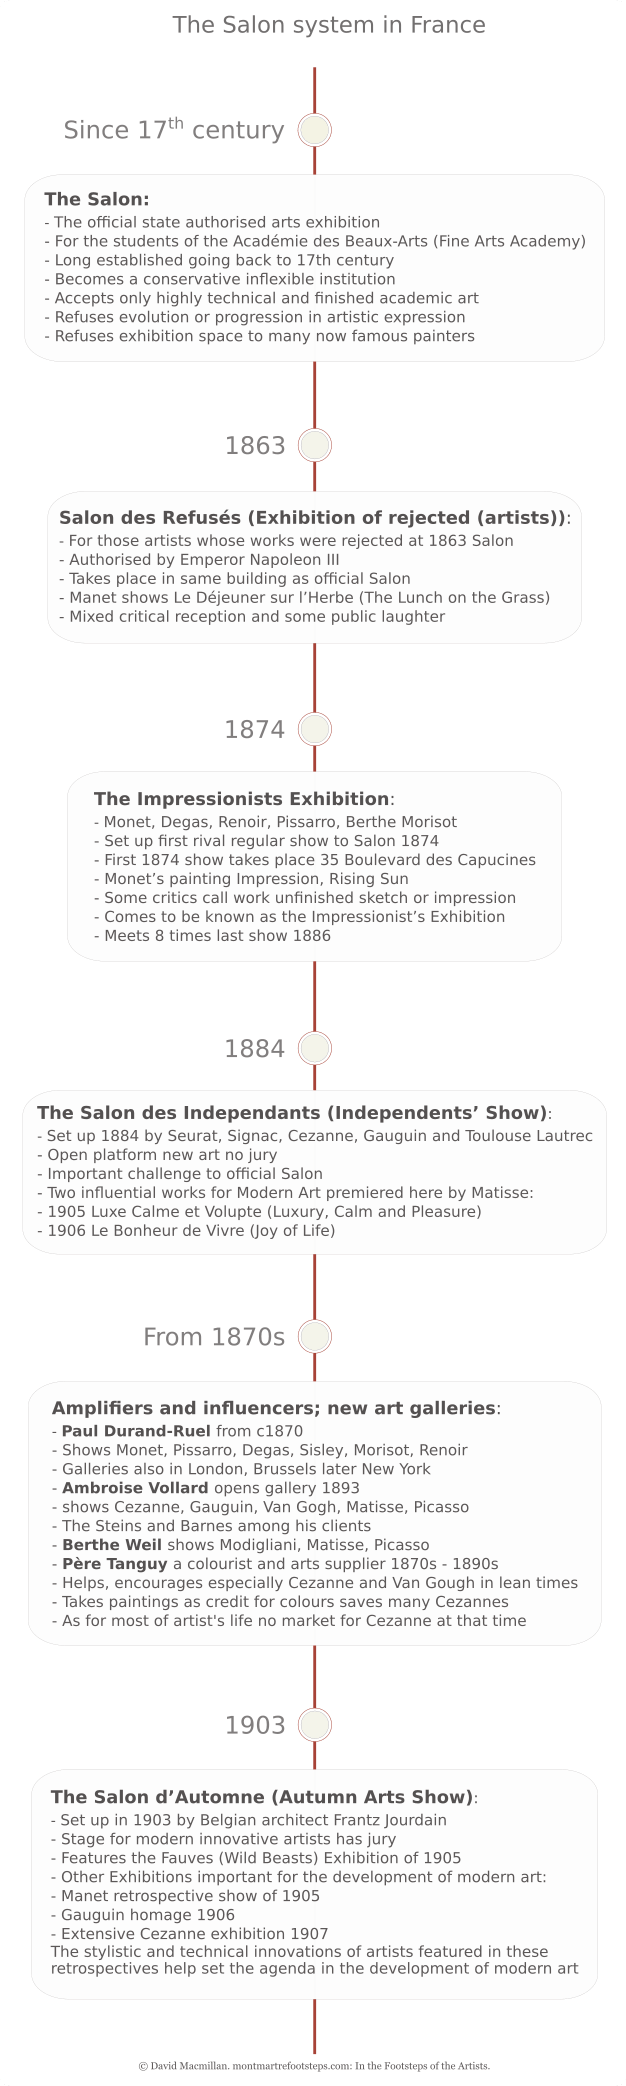 A vertical infographic timeline giving text details of the salon system and the alternative salons that eventually provided an alternative. These were the Impressionists exhibition, The Independents' show and the Autumn show. These alternative arts exhibitions allowed the leading experimental artists to short circuit the traditional salon system.